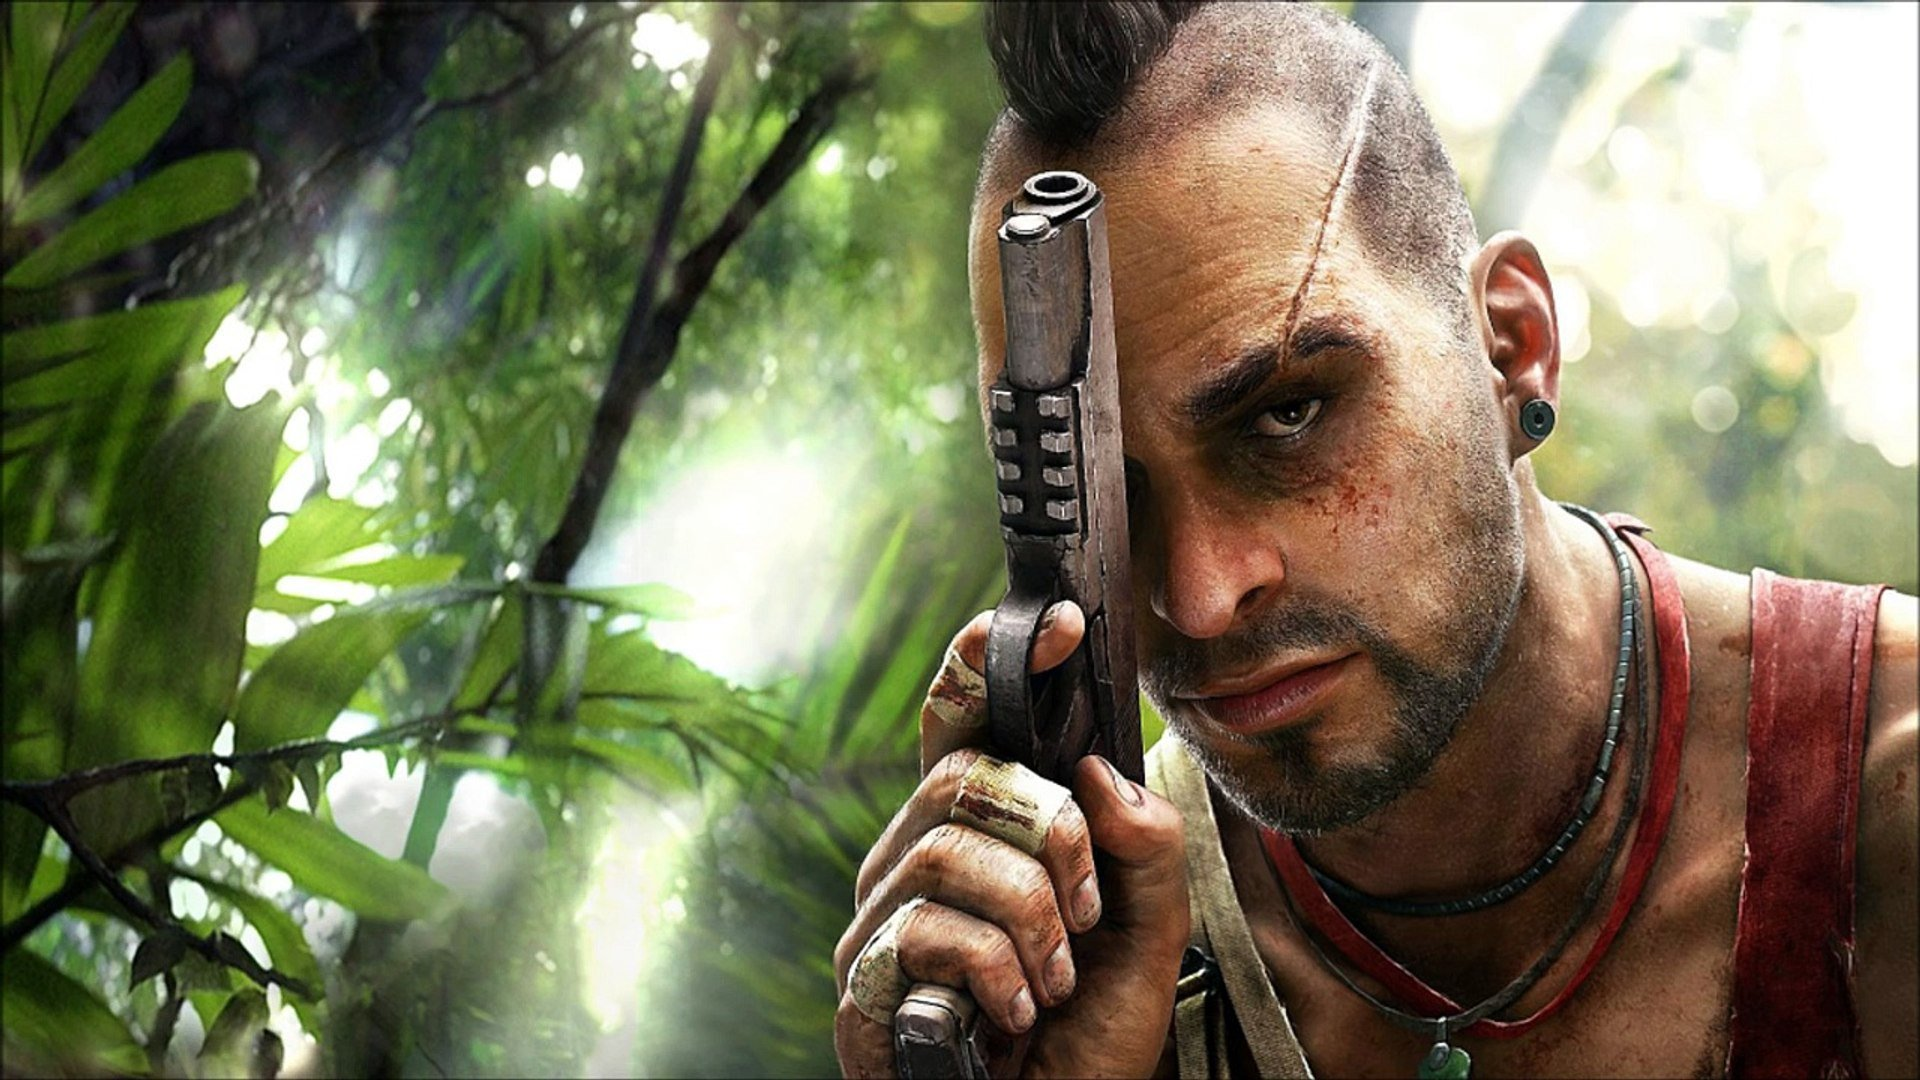 Some scar forensics strengthen the case that Vaas is in Far Cry 6 screenshot